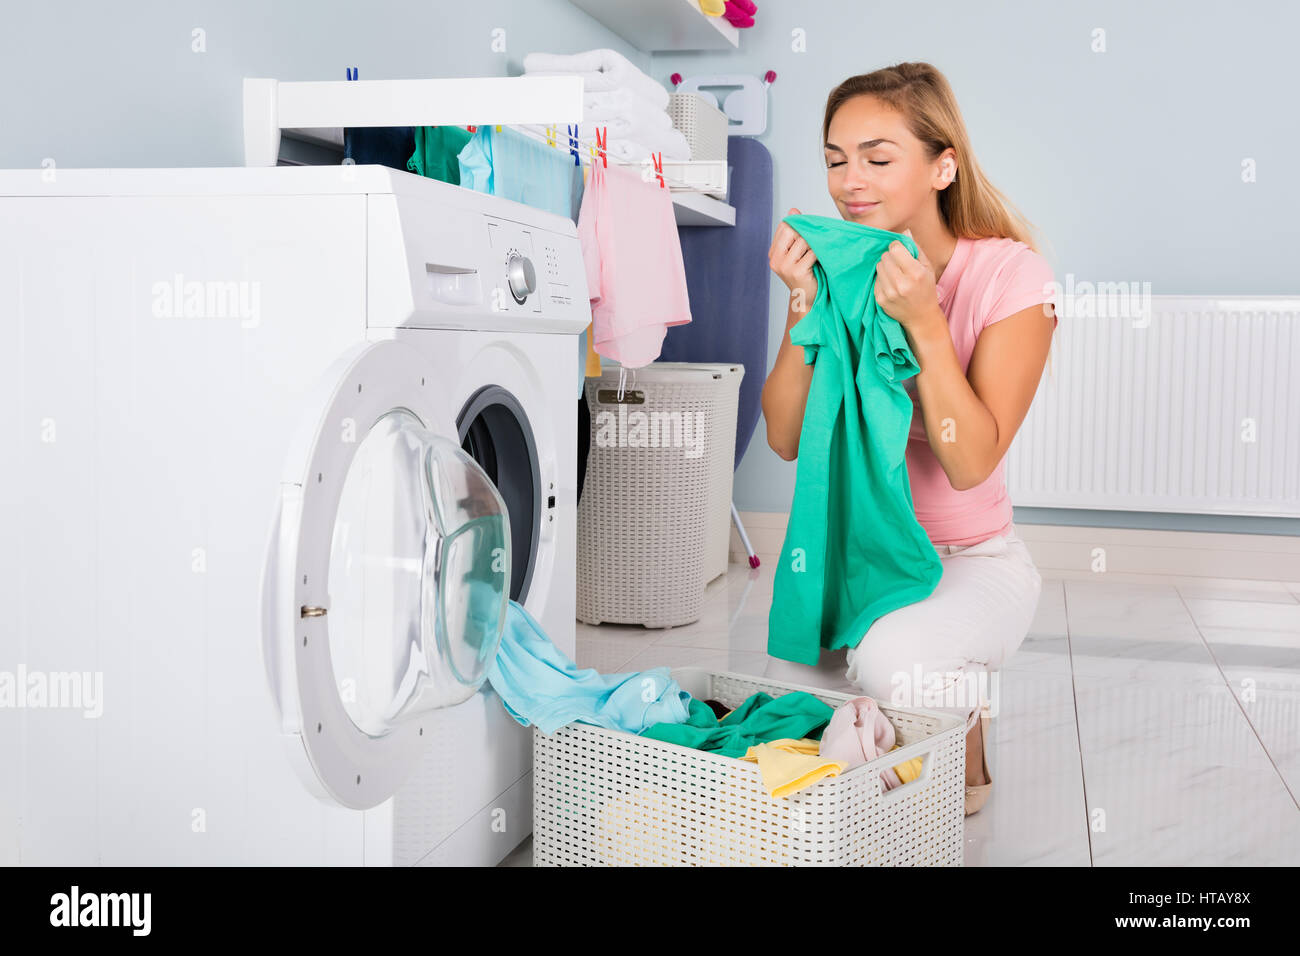 Young Smiling Woman Smelling Clothes After Washing In Washing Machine At Utility Room - Stock Image